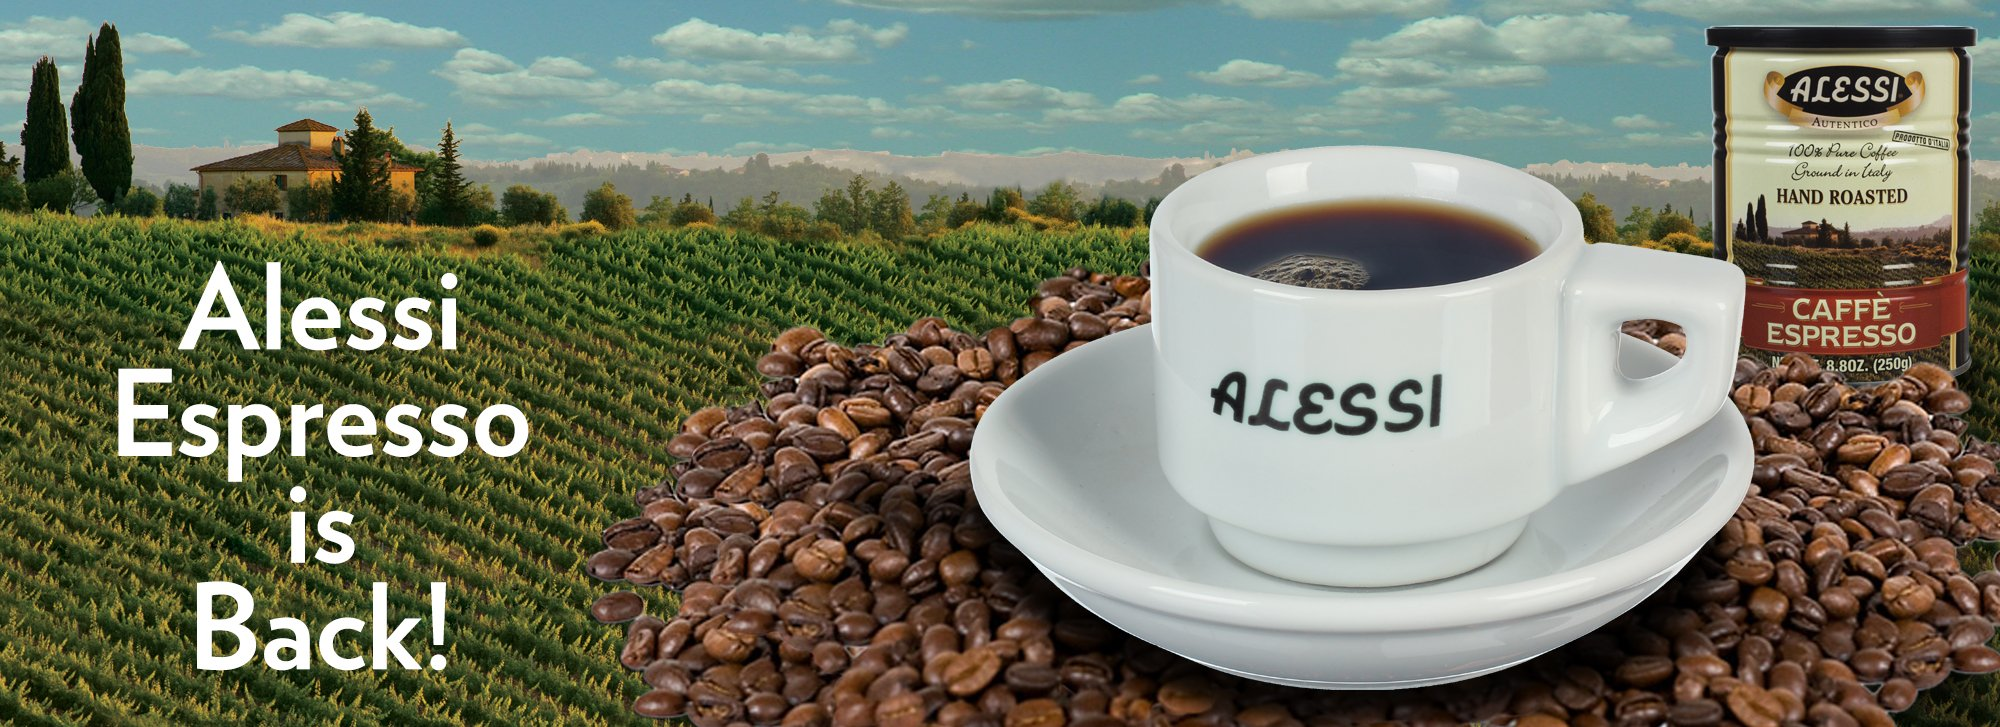 Alessi Espresso is Back!